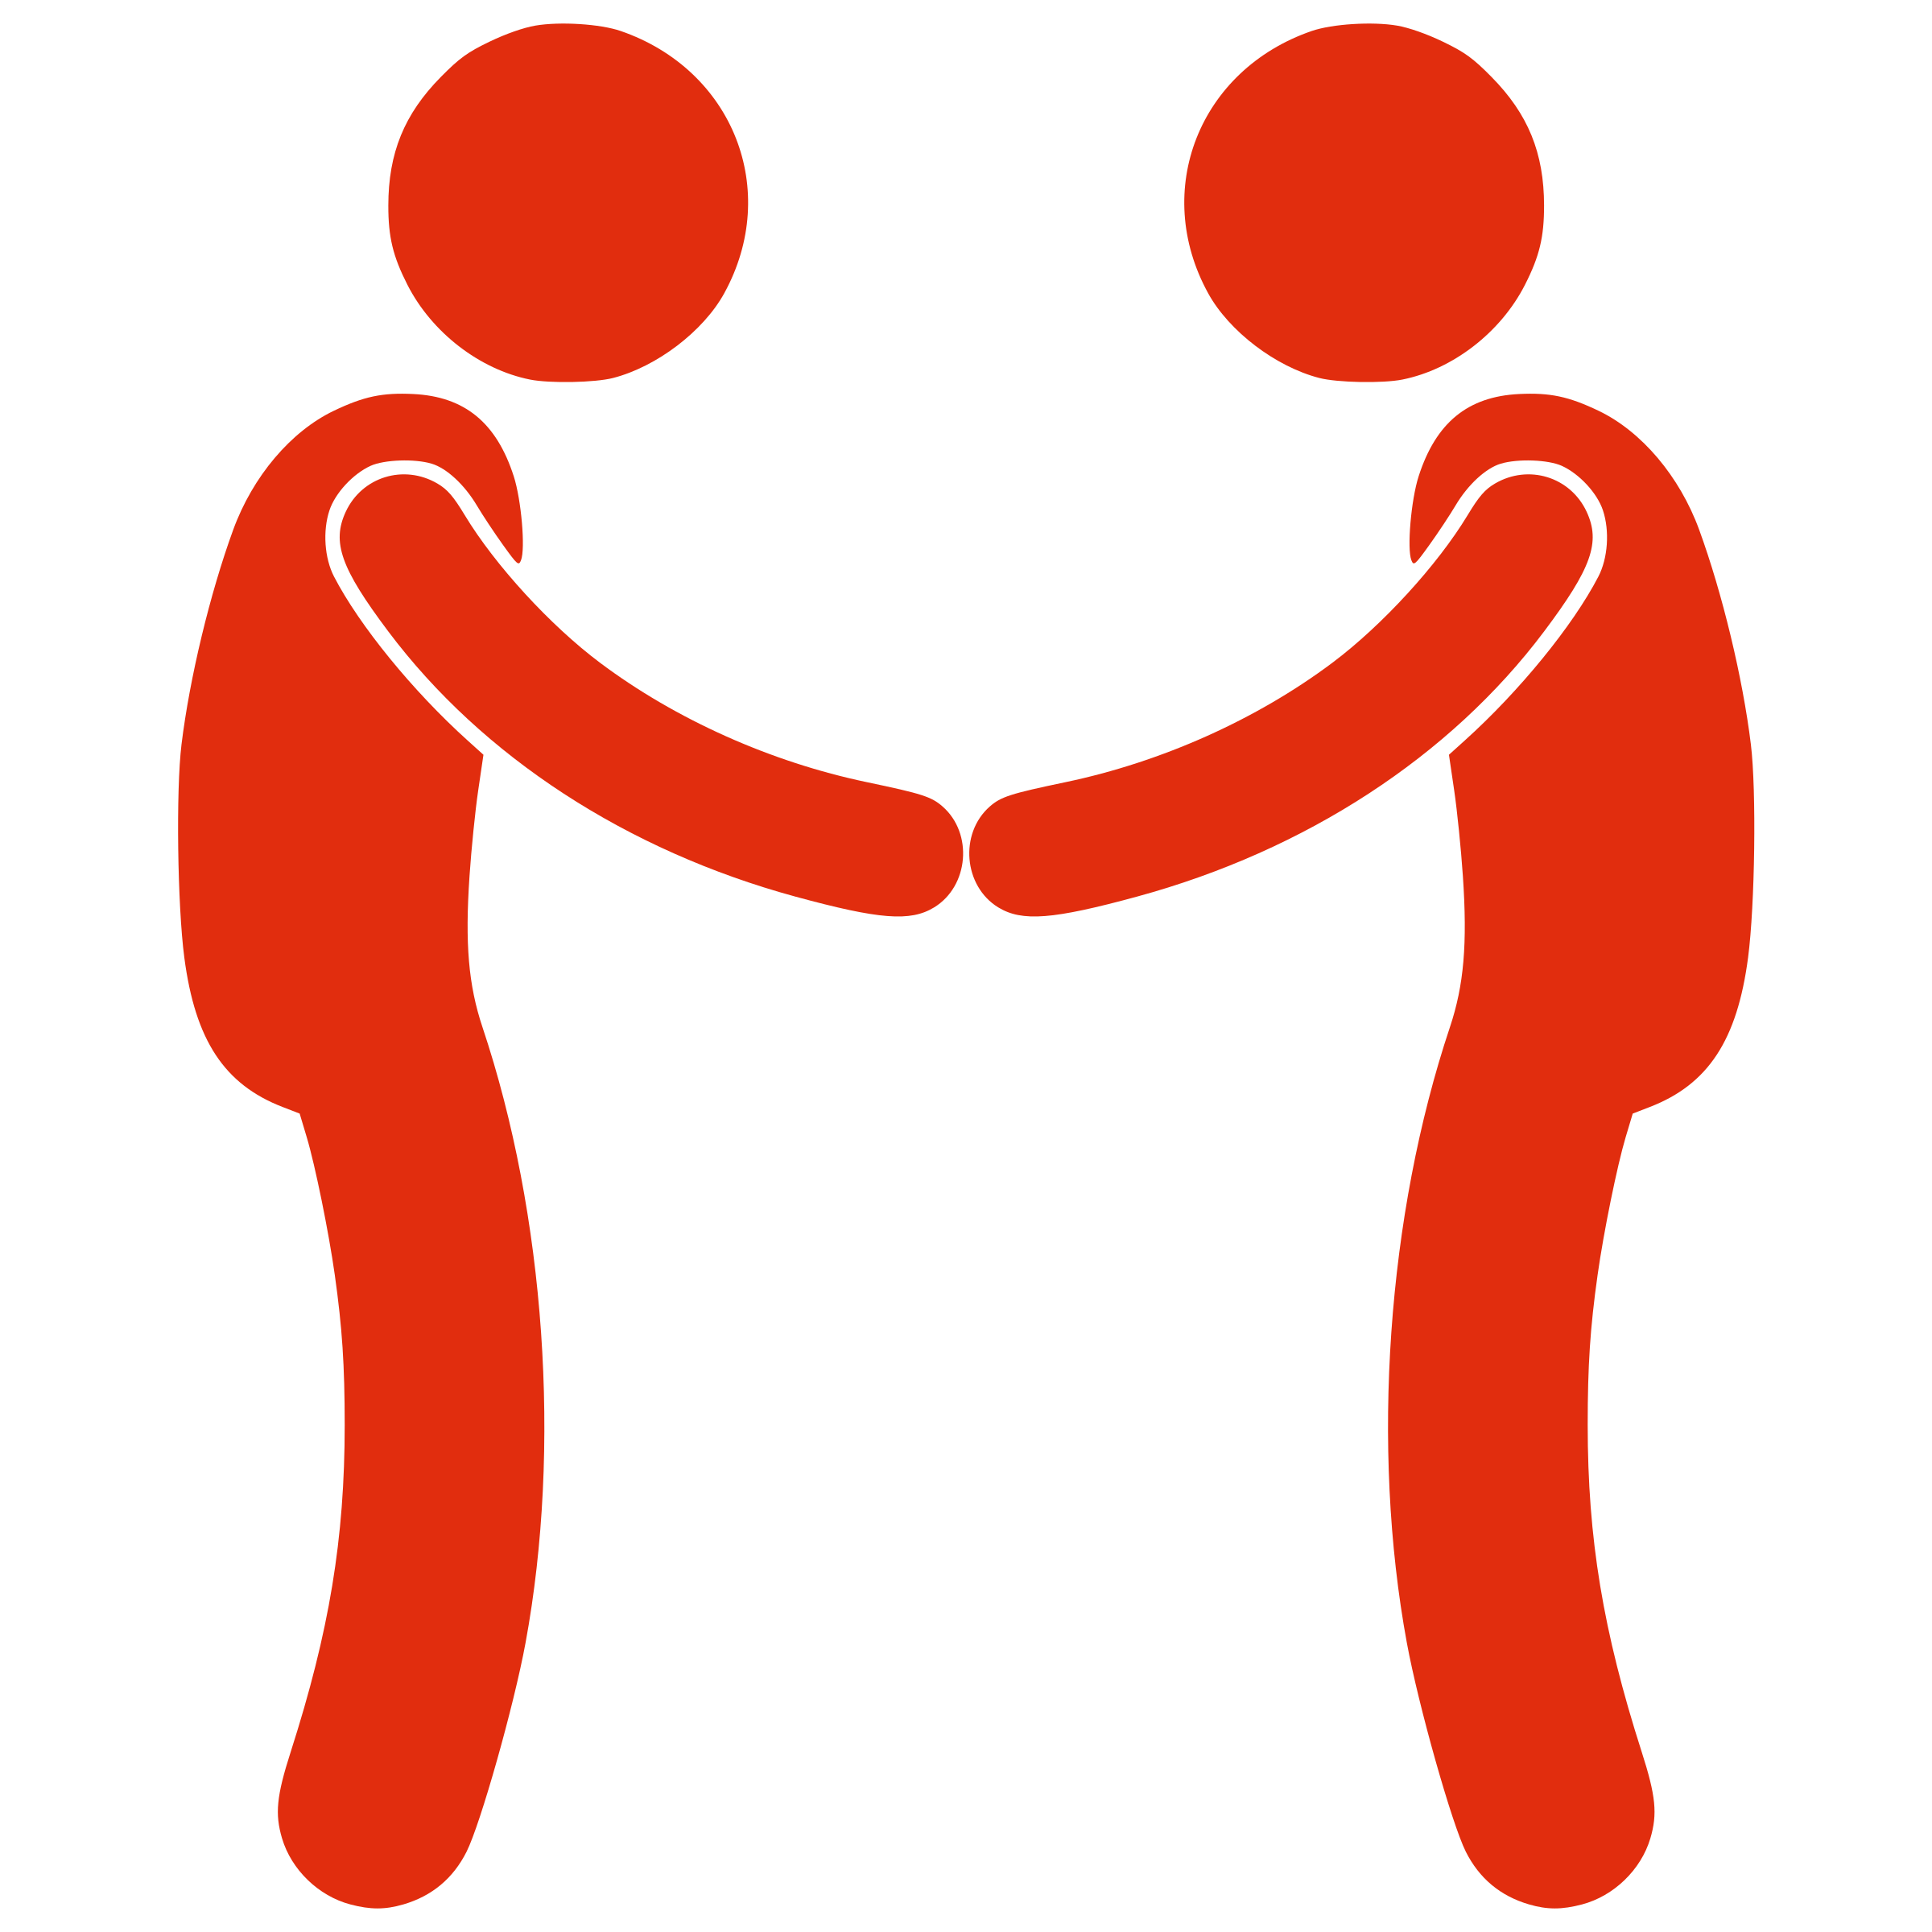 Meeting clipart face to face meeting. Silhouette men big image